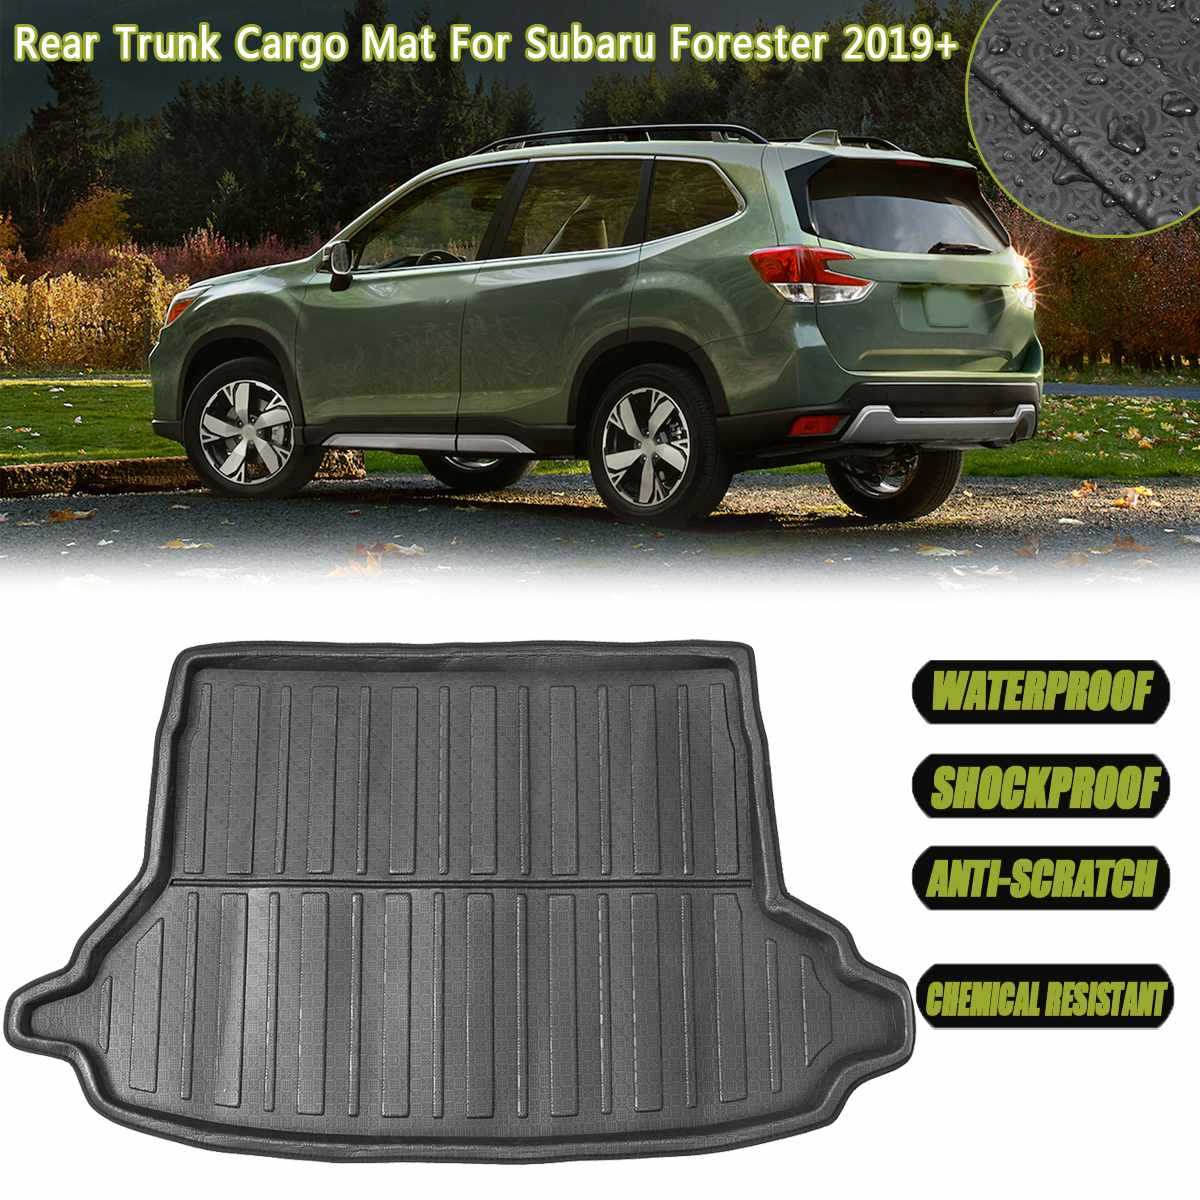 Car Boot Cargo Liner Tray Trunk Floor Mat Liner Carpet Tray For Subaru Forester 2019+ Waterproof Car Styling Auto Floor Mat Part